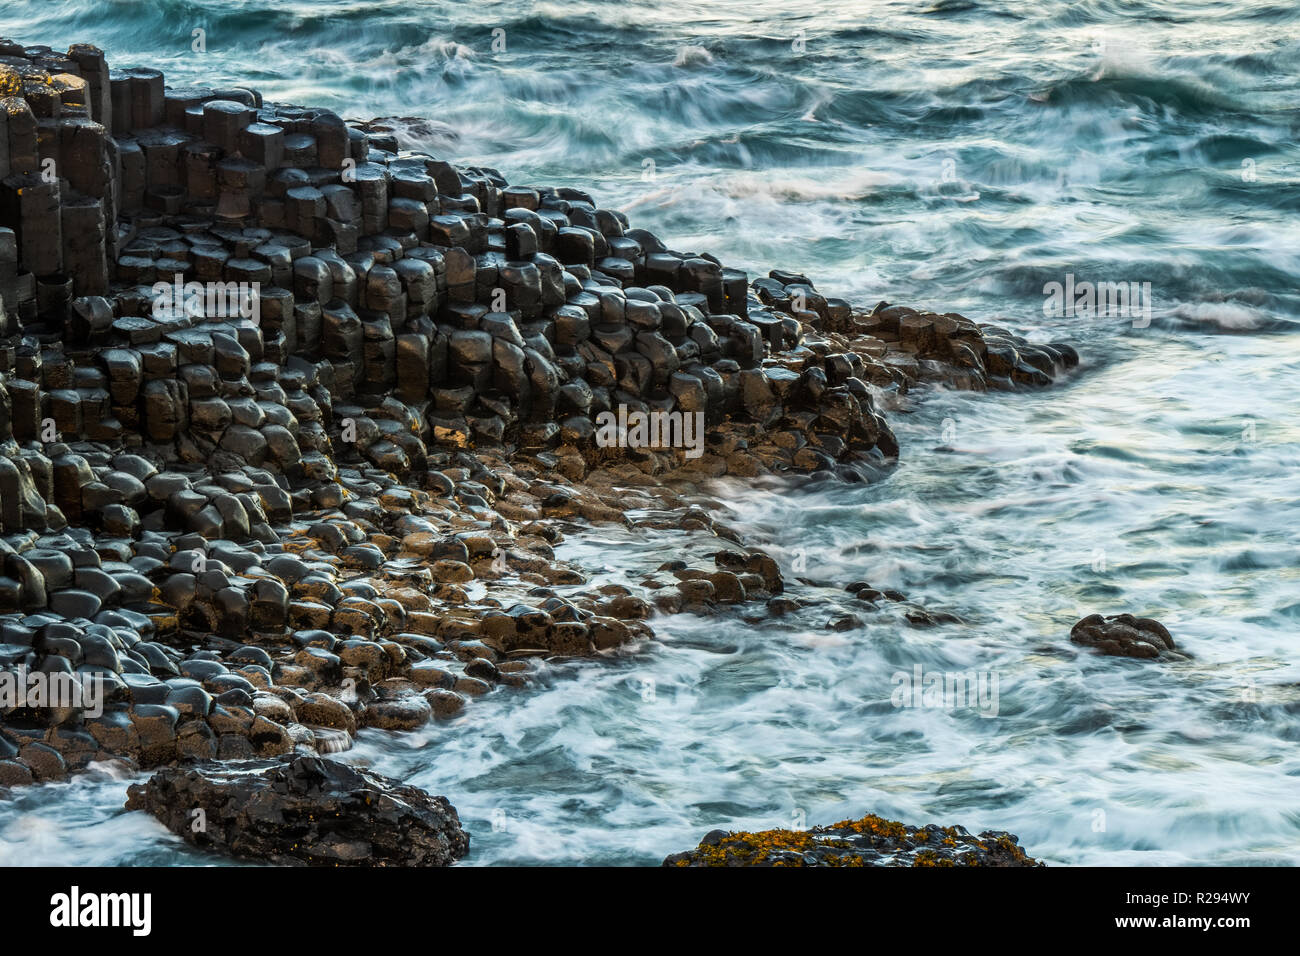 Landscape around Giant`s Causeway, A UNESCO world heritage site which has numbers of interlocking basalt columns result of an ancient volcanic fissure - Stock Image